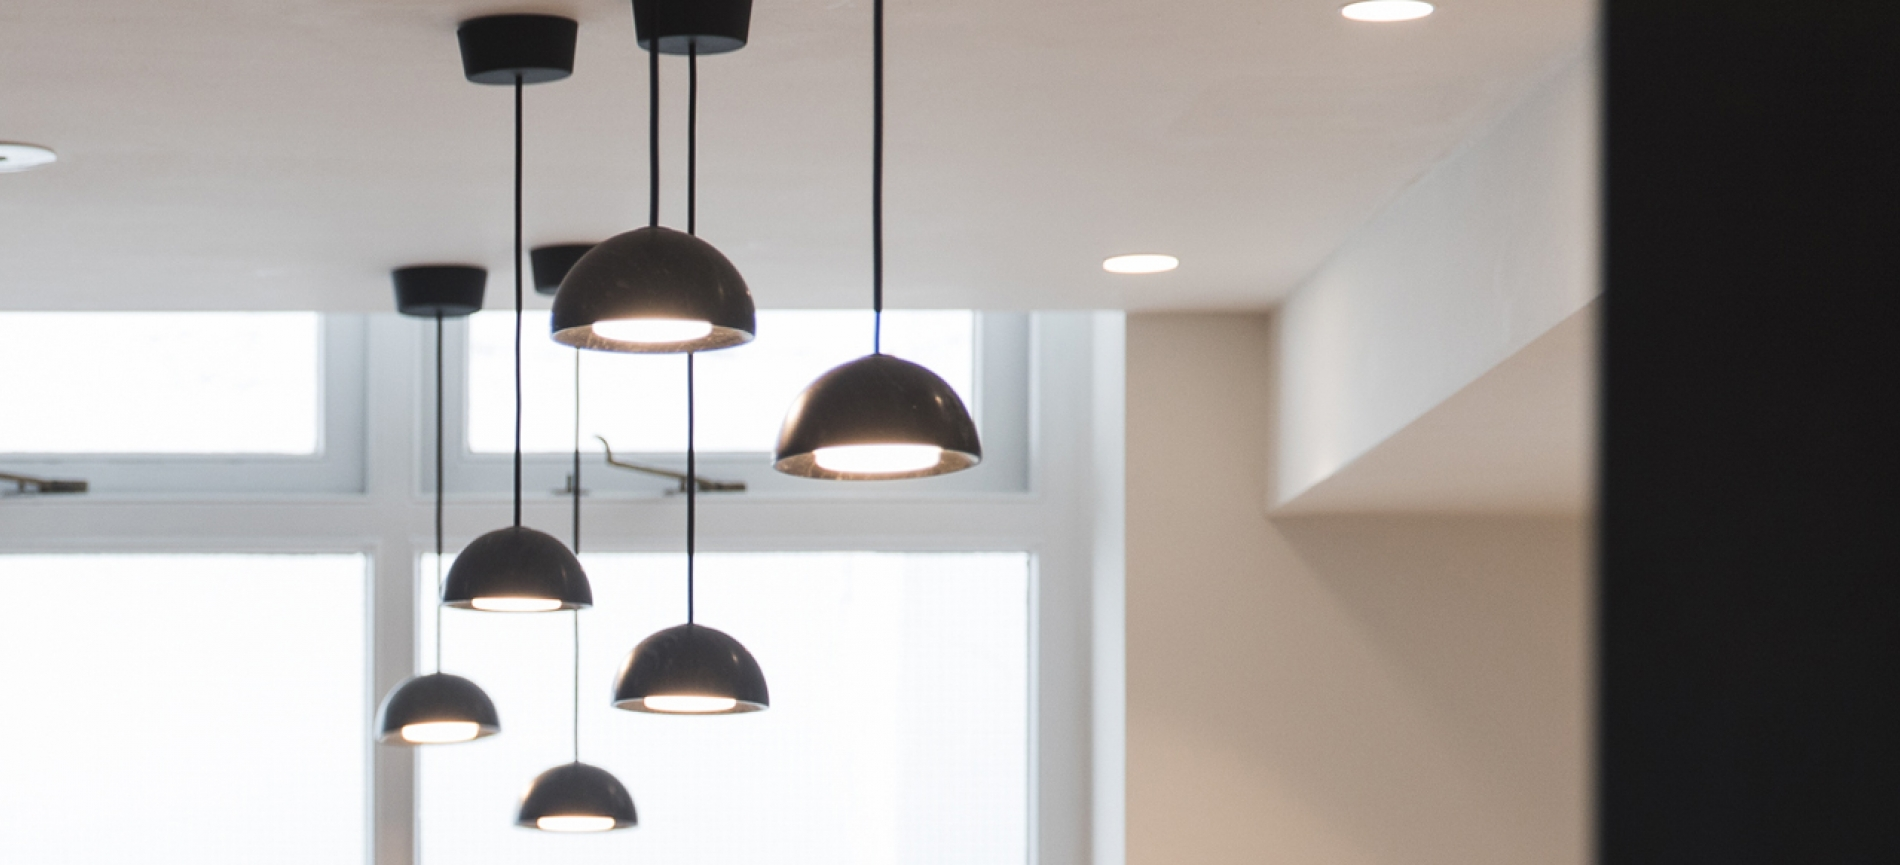 Coffee shop lights at 54 Doughty Street